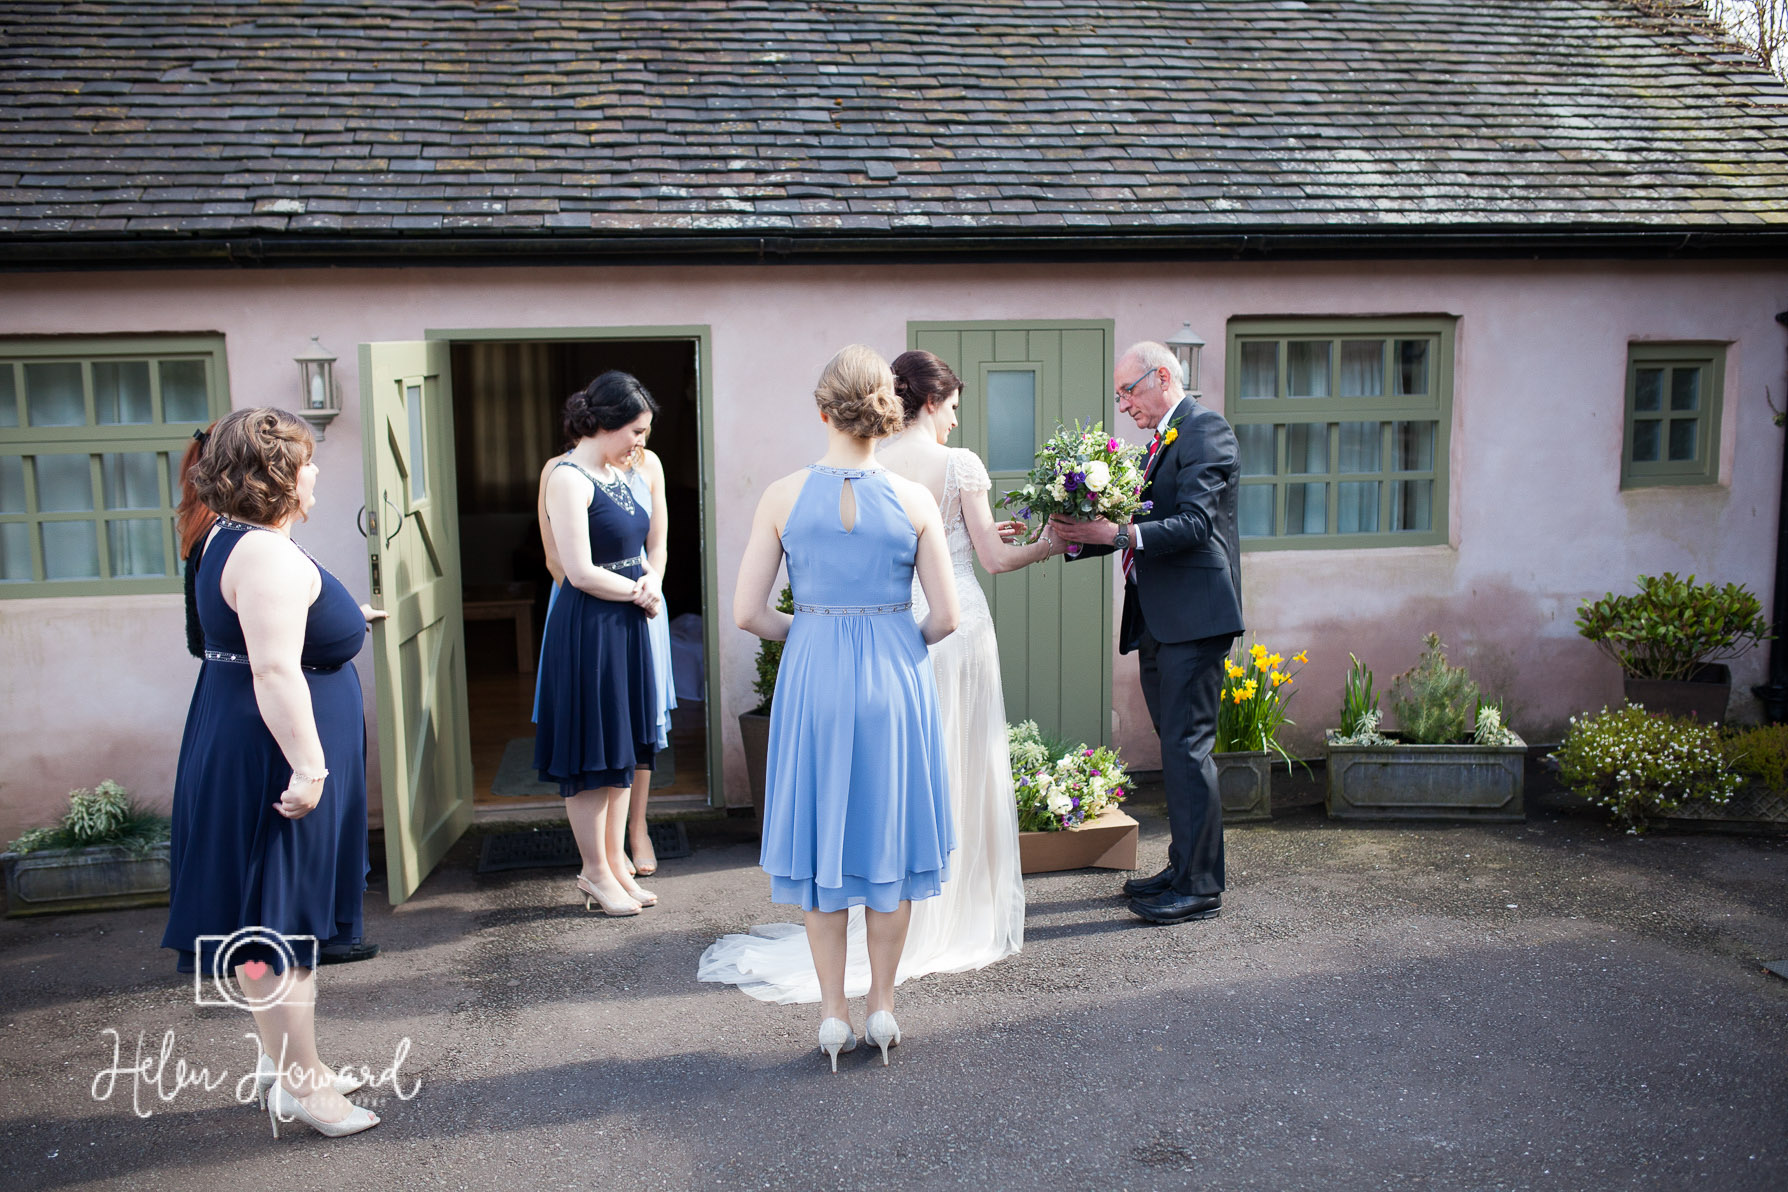 Bride, her dad and her bridesmaids leaving the old dairy for the ceremony